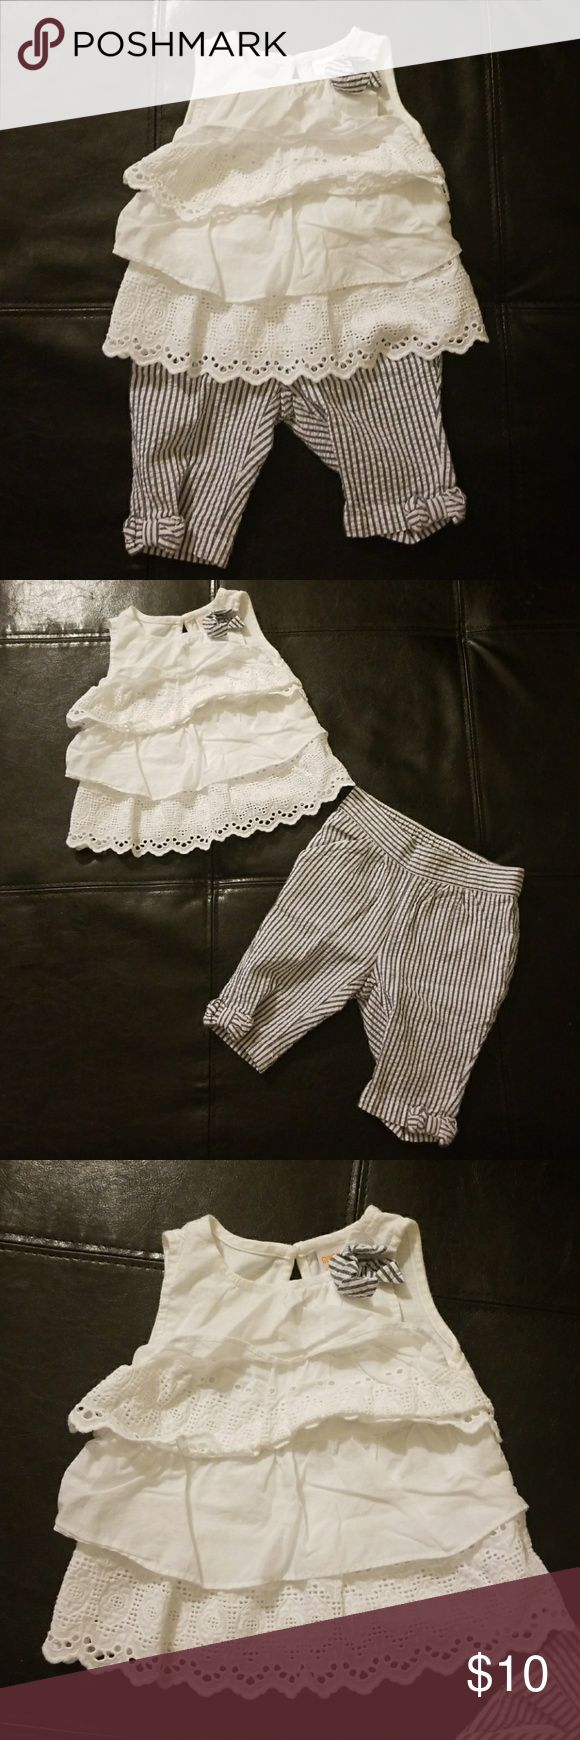 Gymboree 2 Piece Outfit Seersucker Pants Gymboree 2 piece outfit in 6-12 months. Excellent used condition. Seersucker pants with ruffled, layered tank. Blue and white. Top has a bow on it to match the bottom, as well as, layers with cotton blouse fabric and eyelet detailing. Pet and smoke free home. (Bin 24) Gymboree Matching Sets